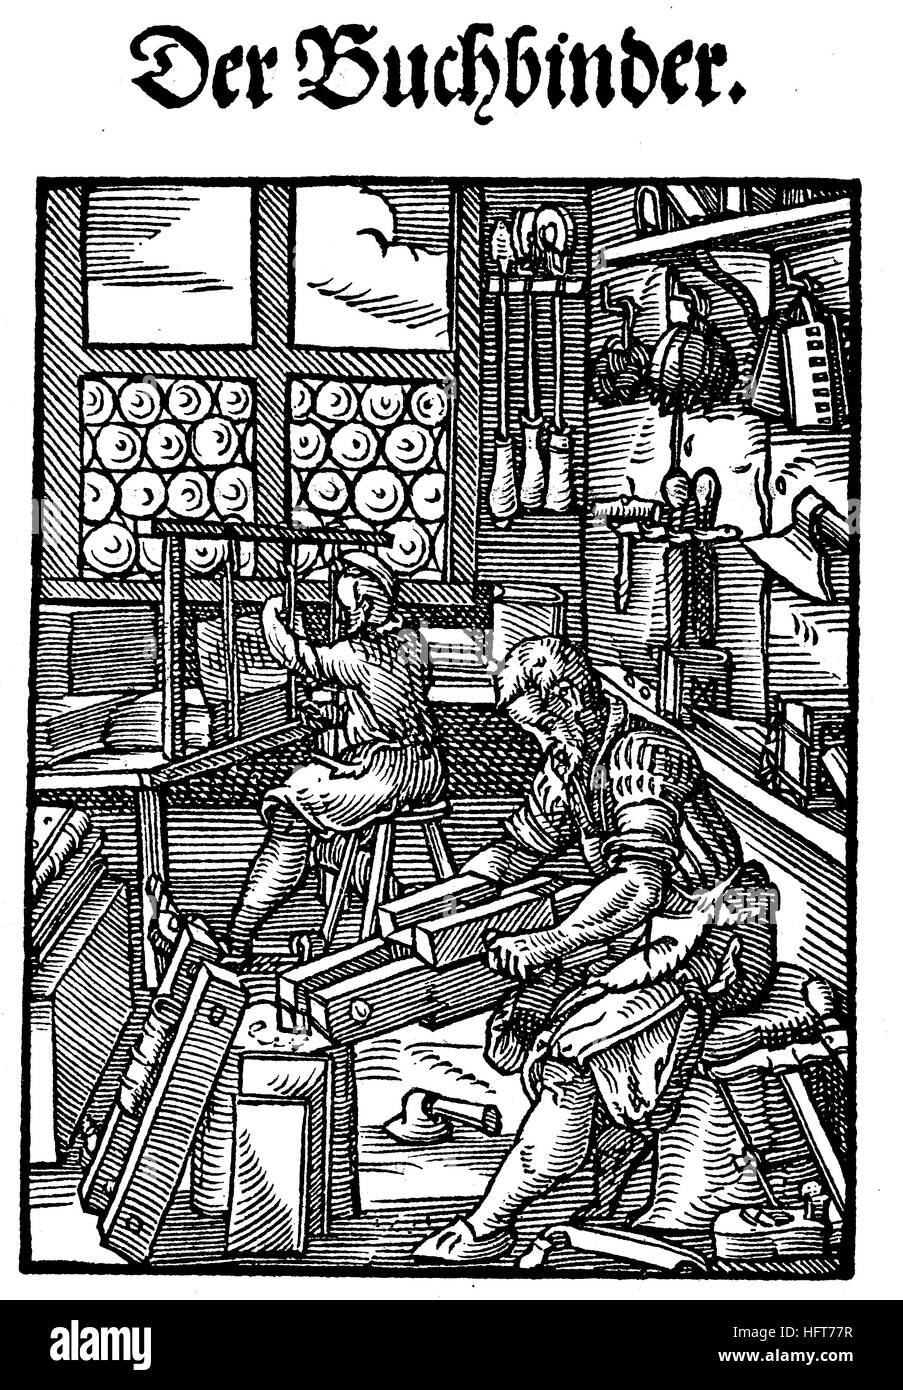 The bookbinder, Der Buchbinder, Woodcut from the, Das Saendebuch, a famous series of woodcuts of the trades by Amman, - Stock Image